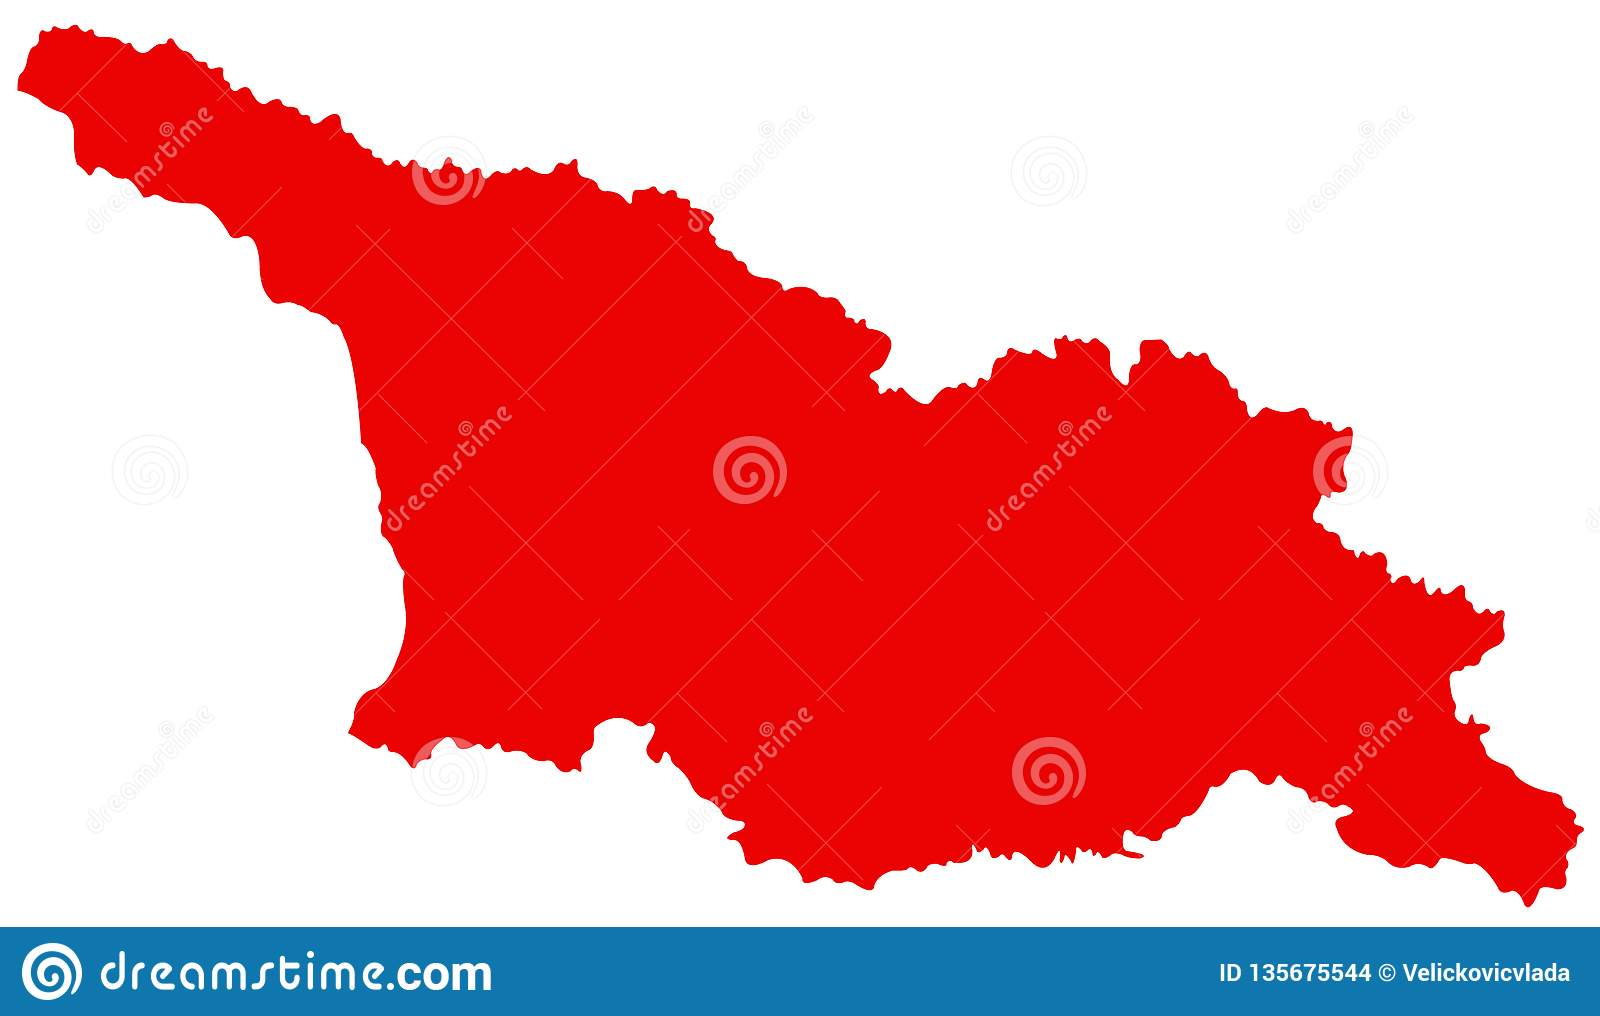 Georgia Country Map - Is A Country In The Caucasus Region Of ... on georgia usa, chechnya map, georgia topographic map, georgia ukraine map, georgia the country, georgia russia map, republic of georgia map, georgia's map, azerbaijan map, georgia regions map, world map, georgia europe, eastern europe map, georgia state map, nation of georgia map, georgia county map, georgia country people, georgia brewery map, georgia political map, armenia map,